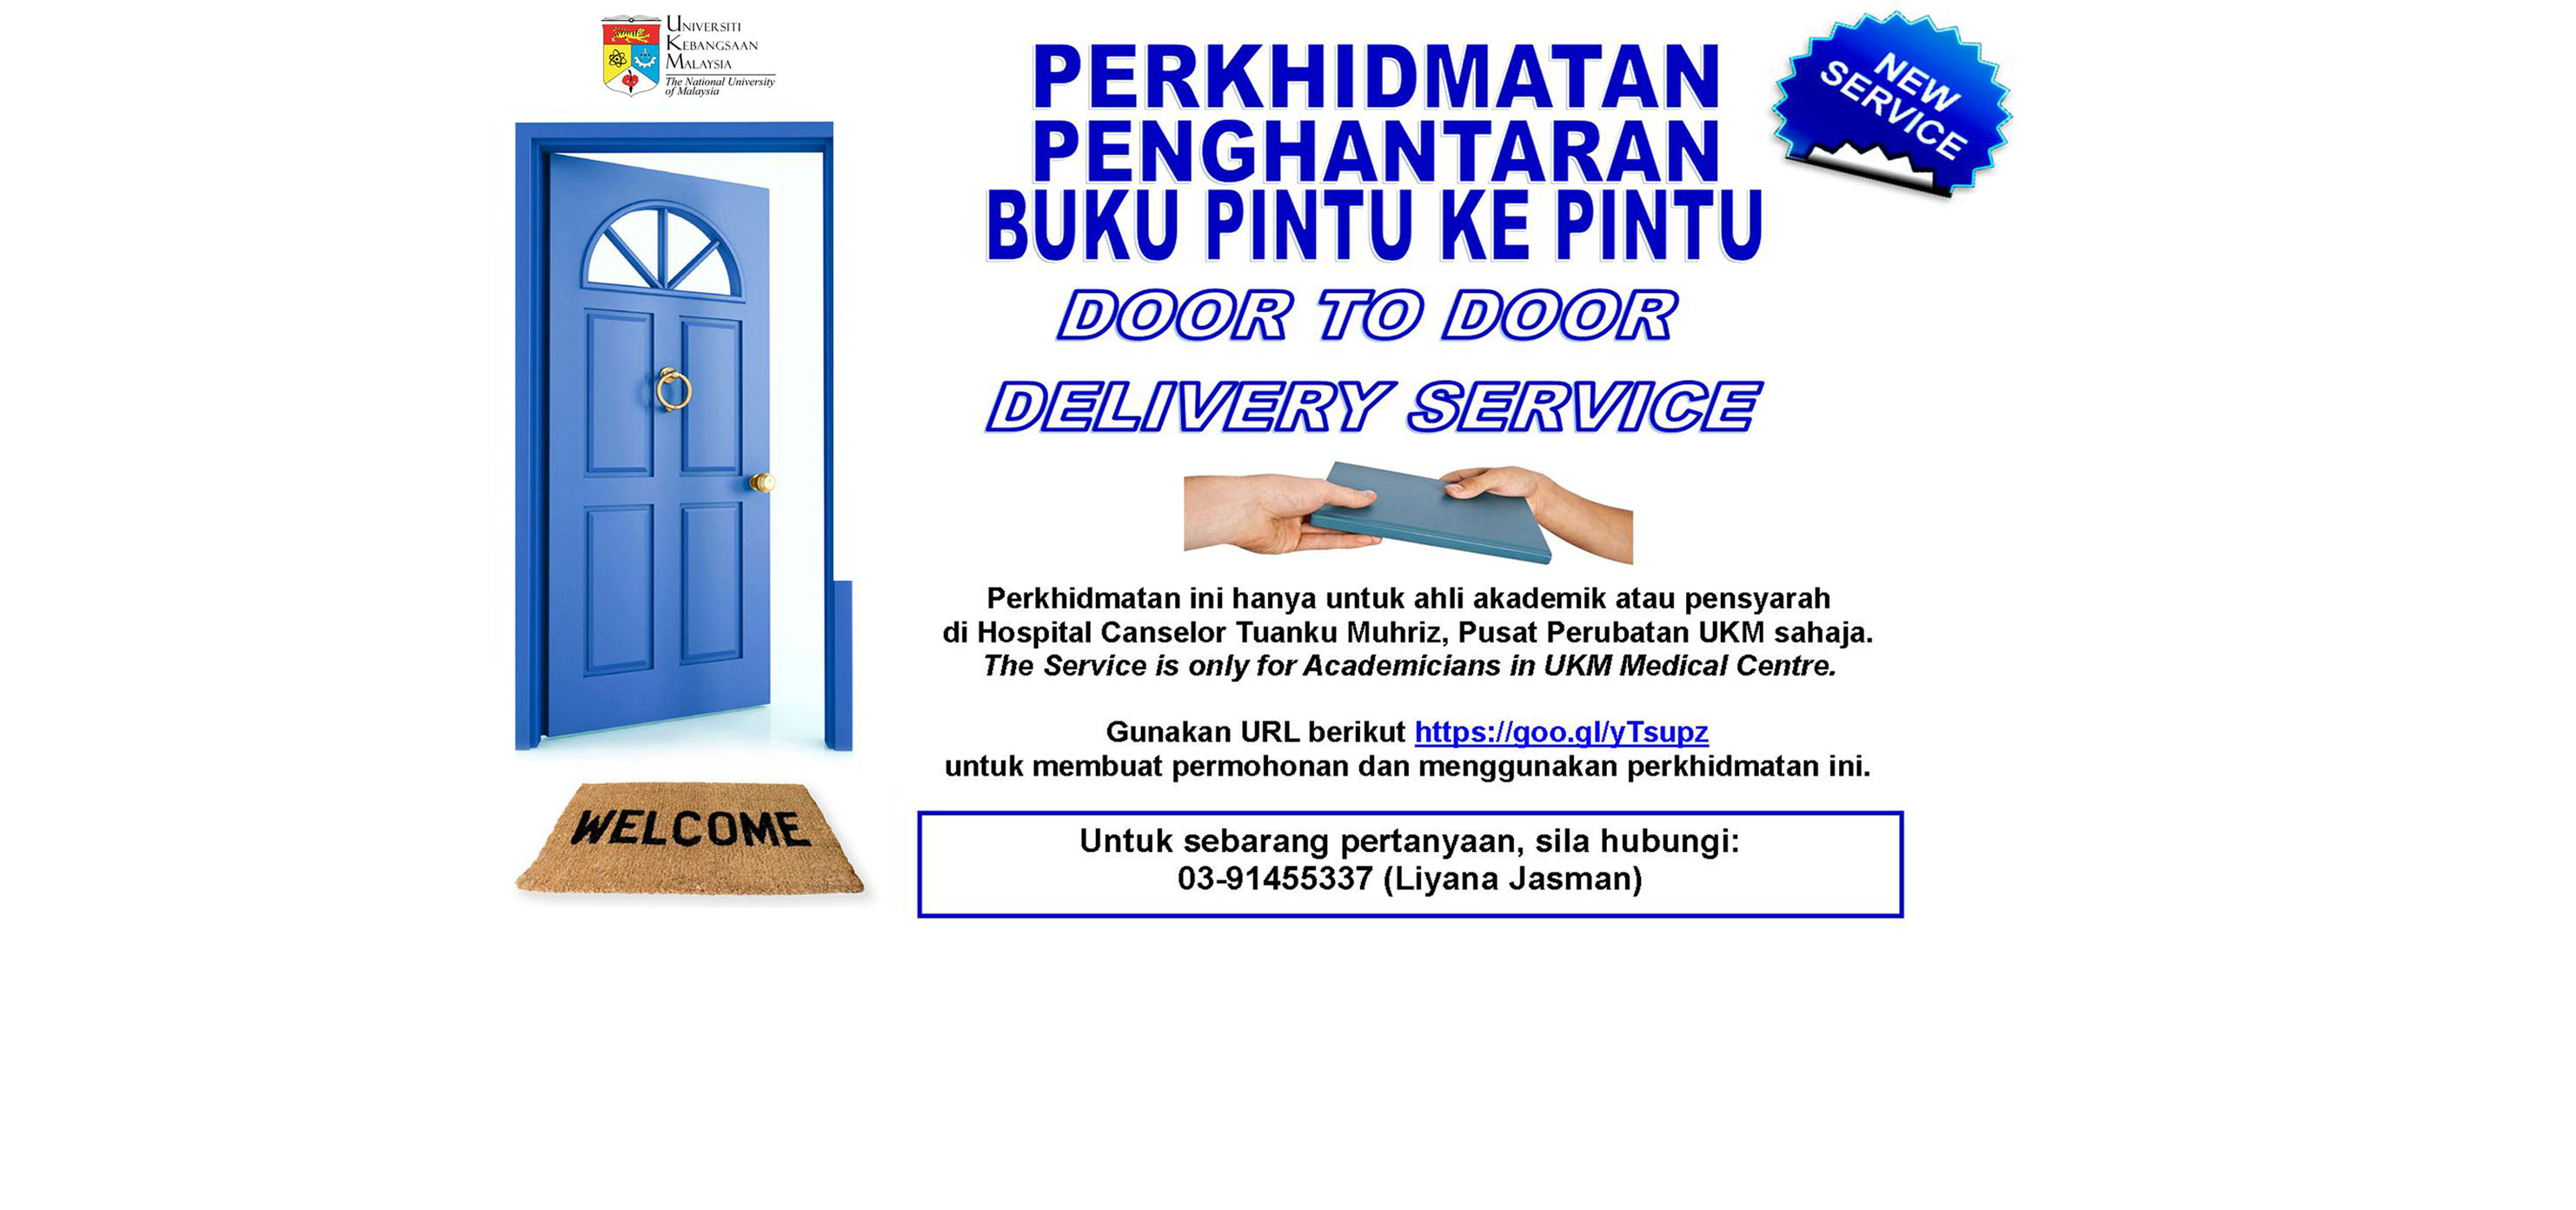 Door to Door Delivery Service